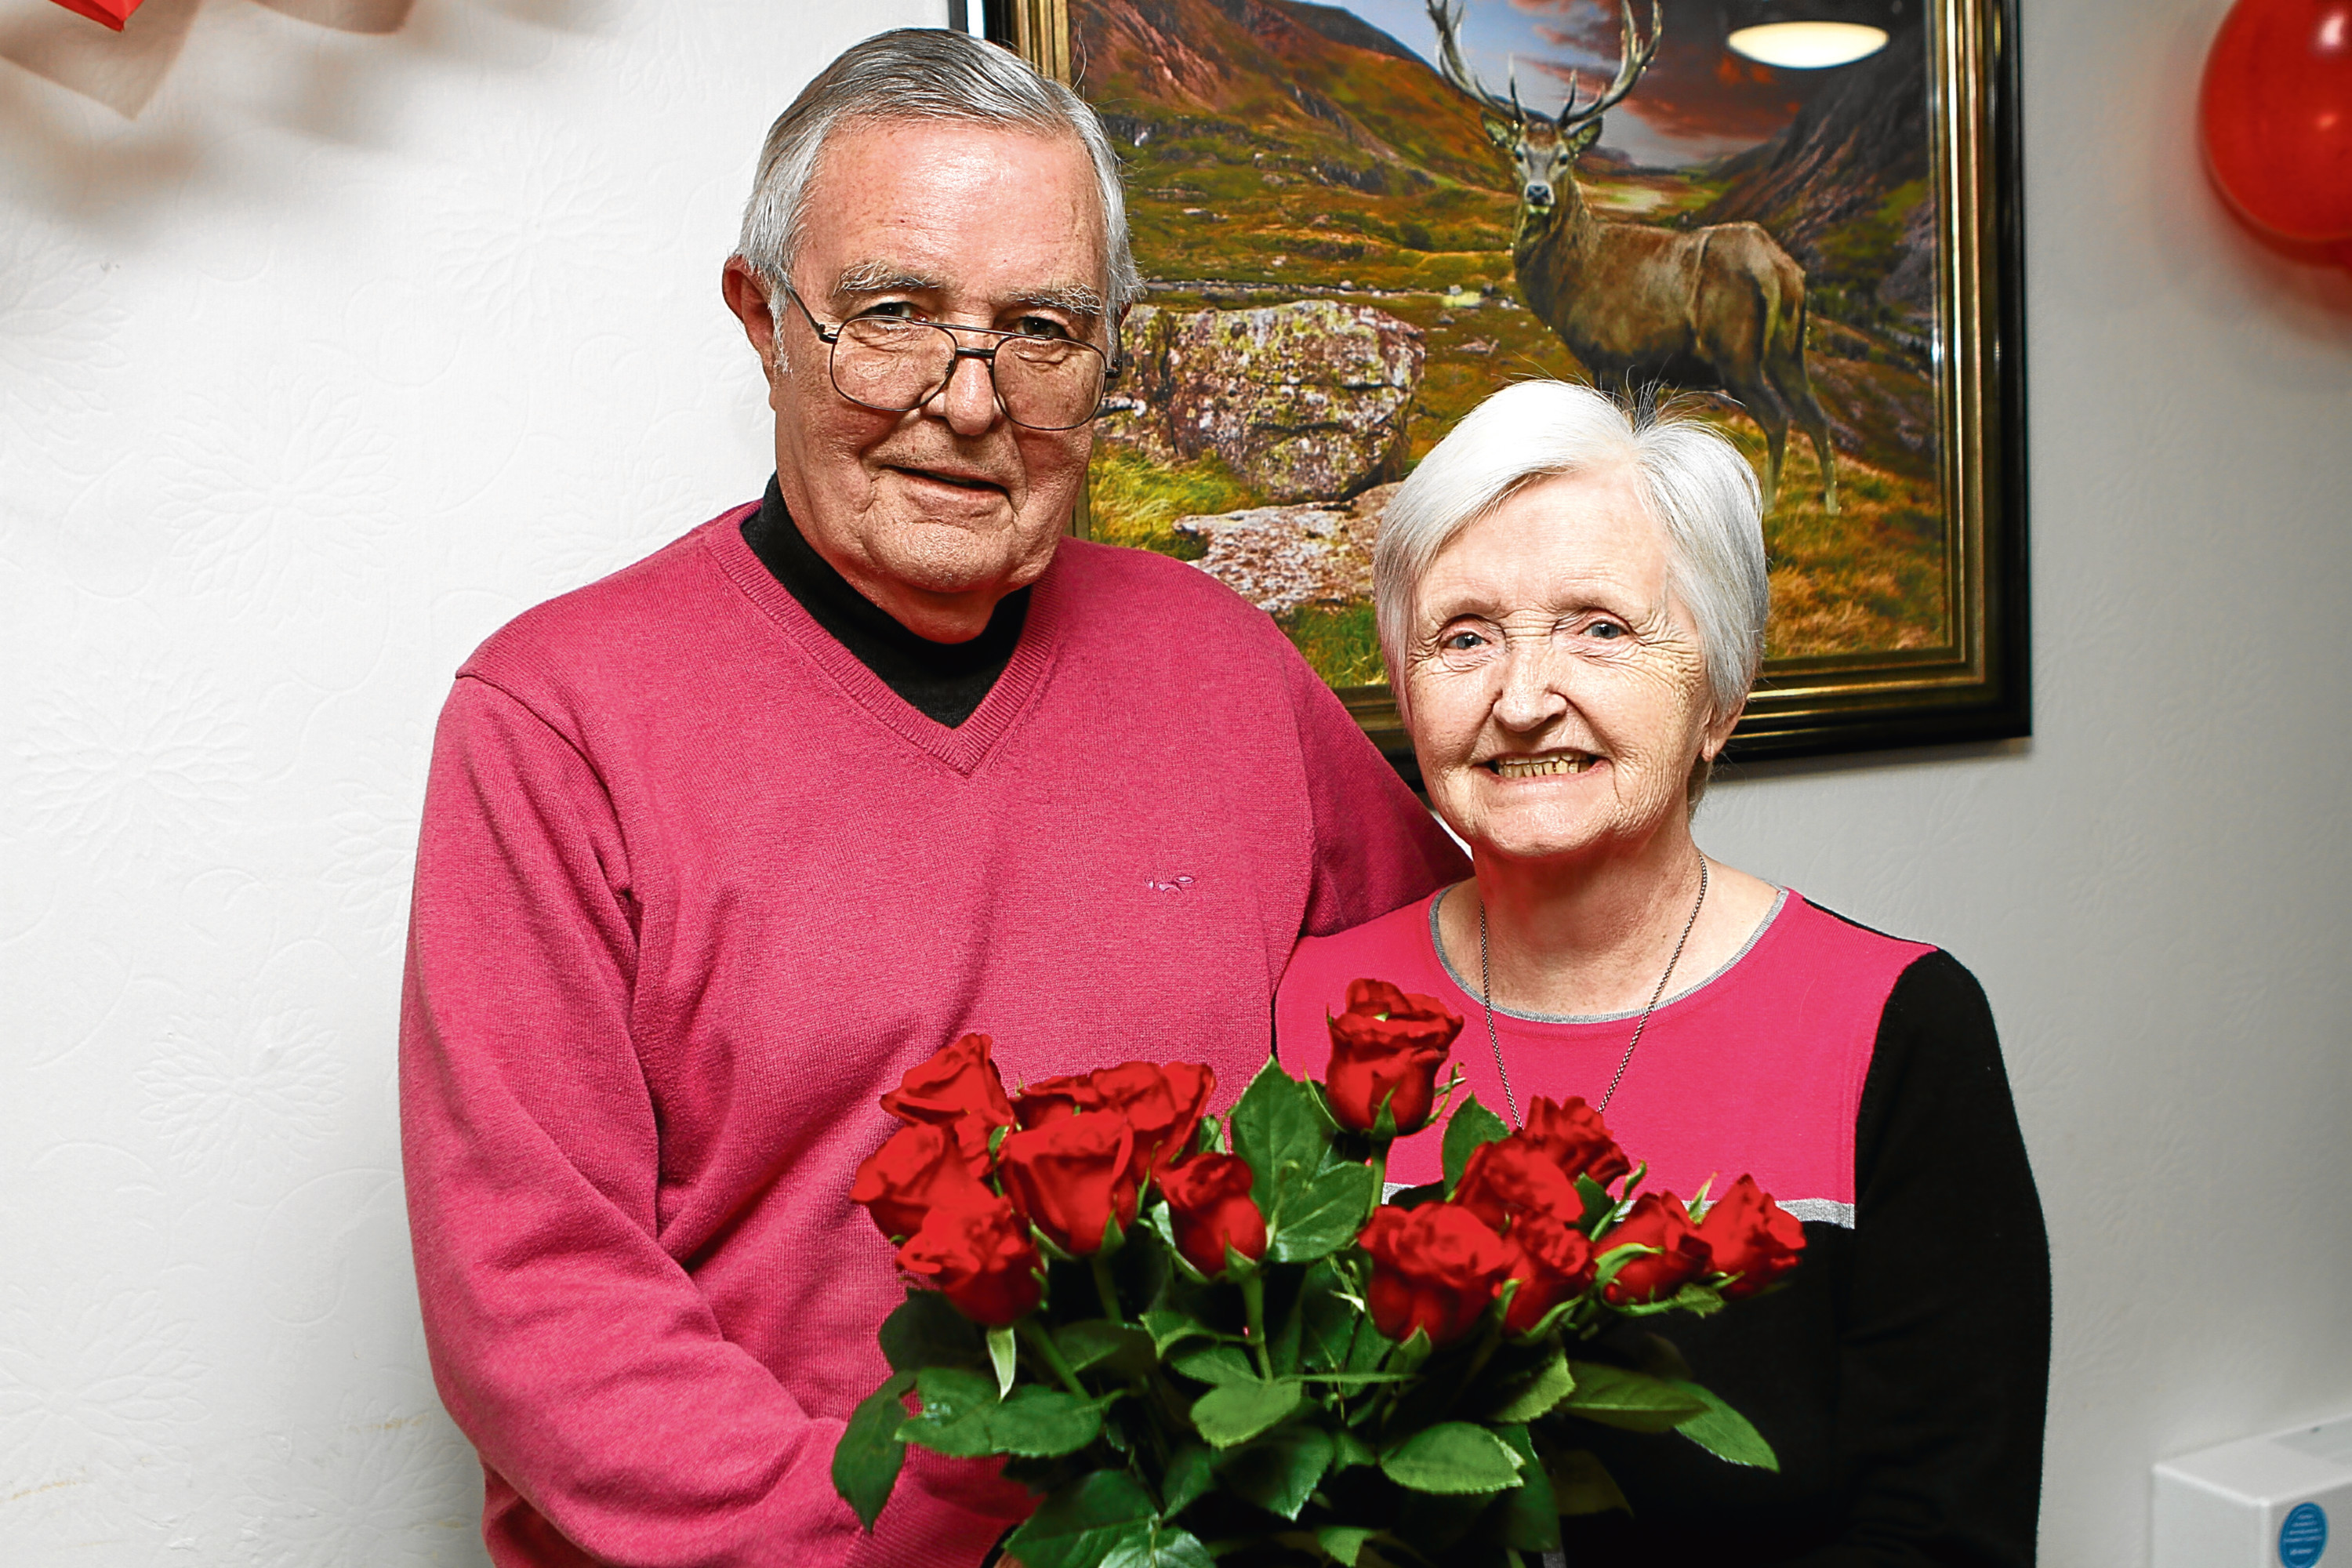 Residents Paddy and Betty Johnson, who have been married for 56 years, celebrate Valentine's Day with some roses